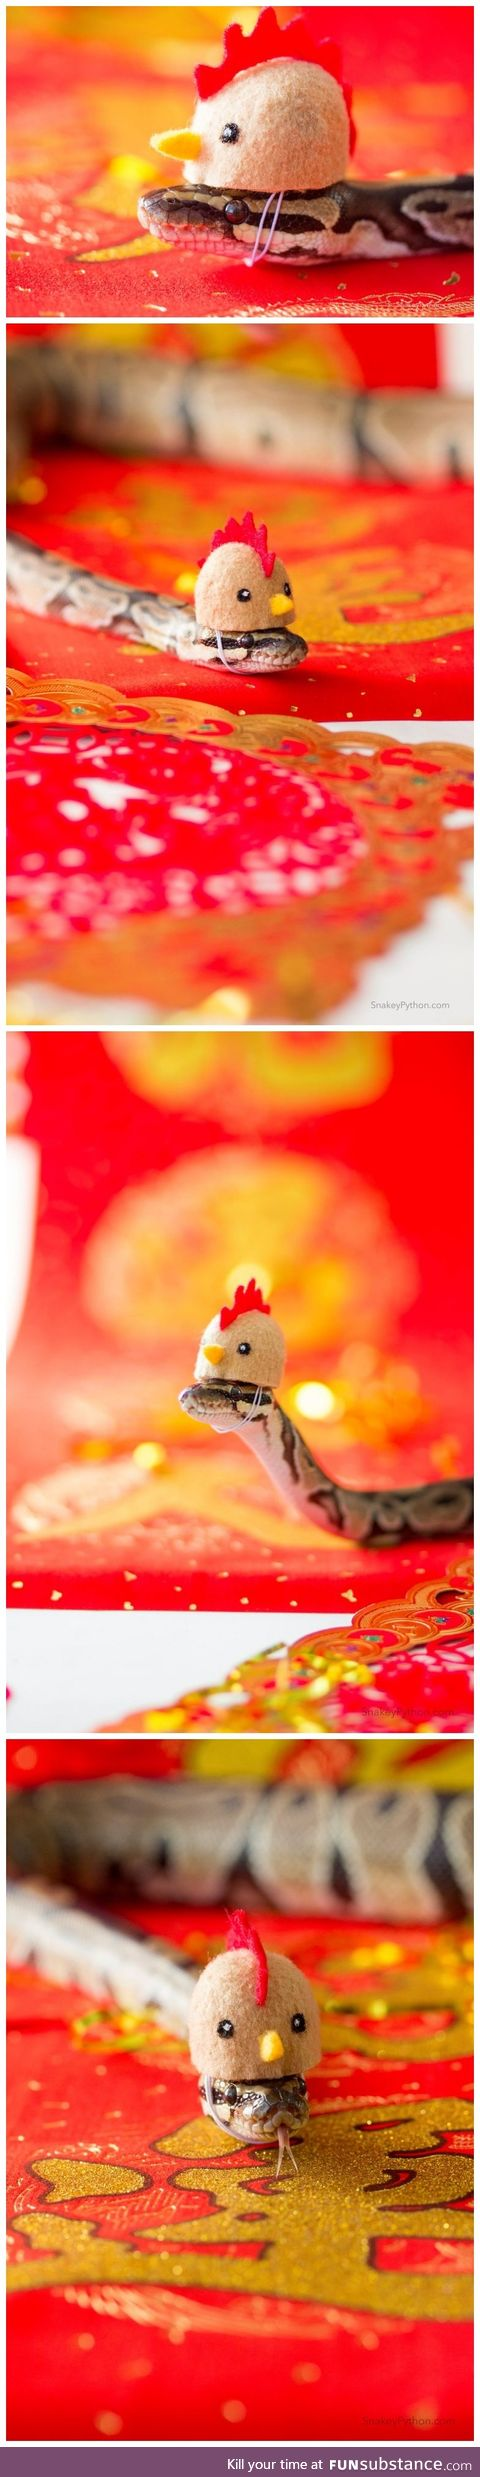 This Snek in a Rooster hat